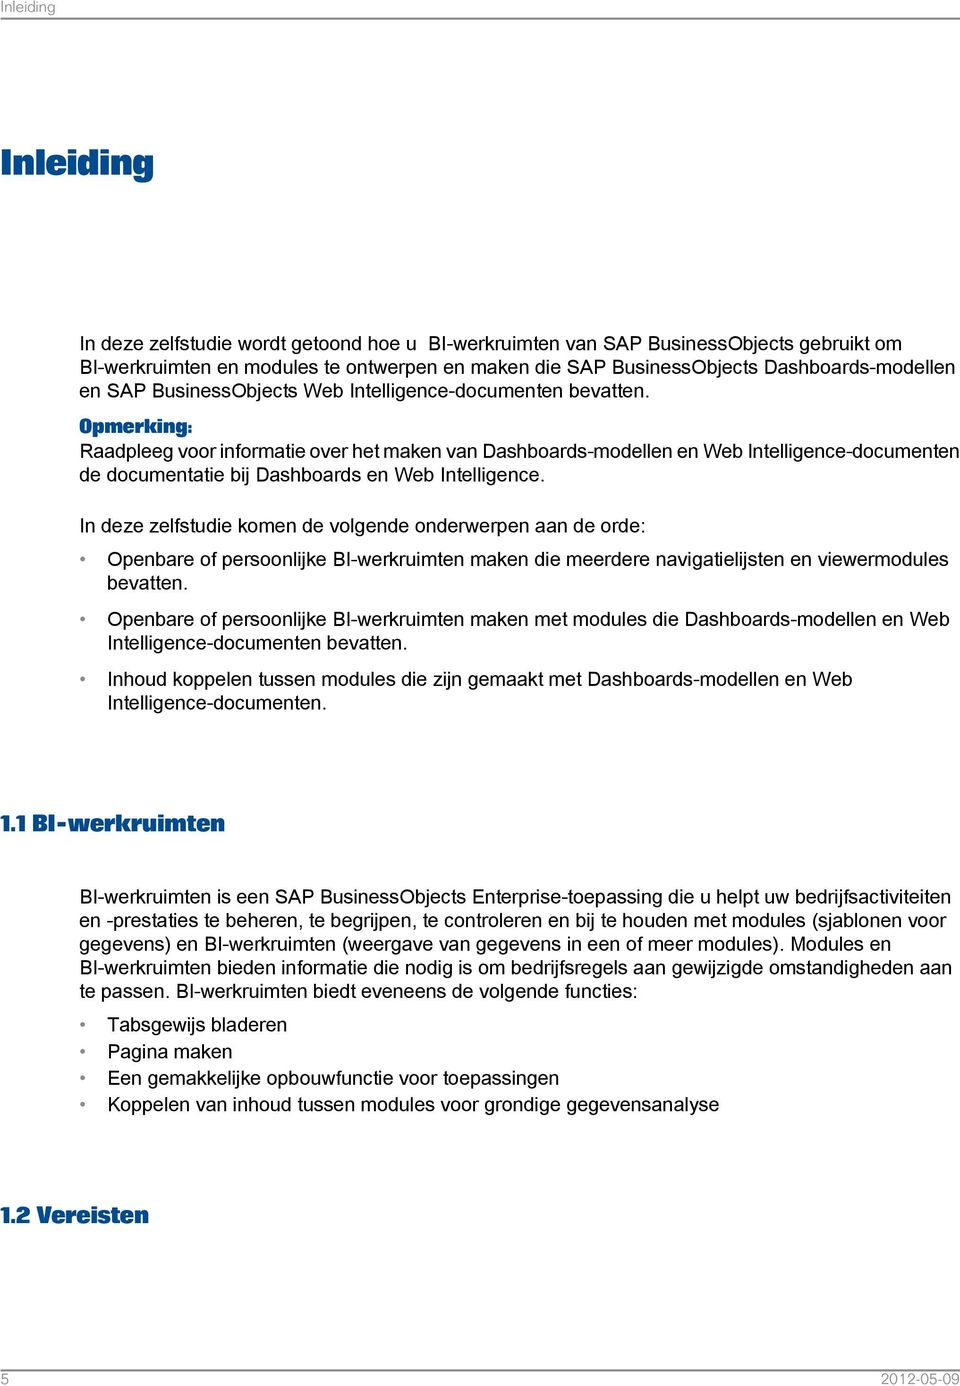 Opmerking: Raadpleeg voor informatie over het maken van Dashboards-modellen en Web Intelligence-documenten de documentatie bij Dashboards en Web Intelligence.